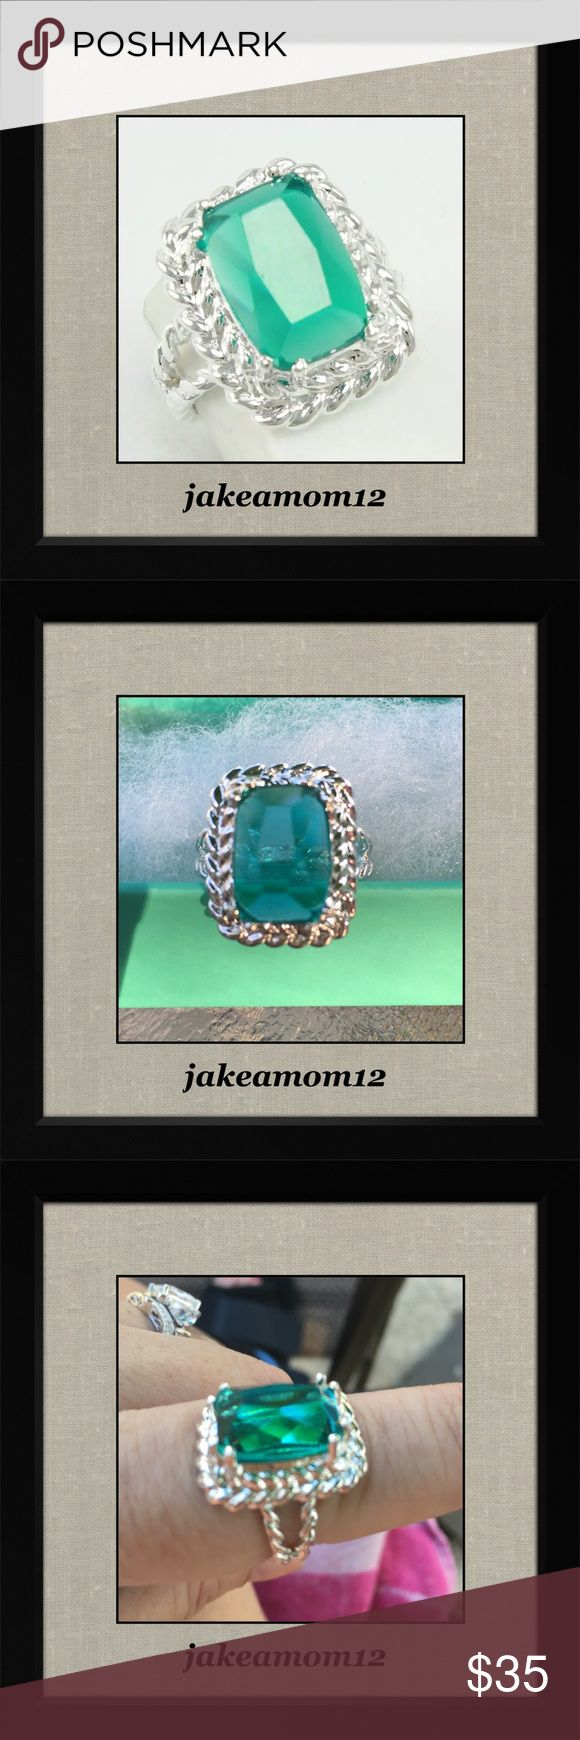 ❤️HOST PICK❤️Green topaz ring Gorgeous green topaz Sterling silver ring Jewelry Rings